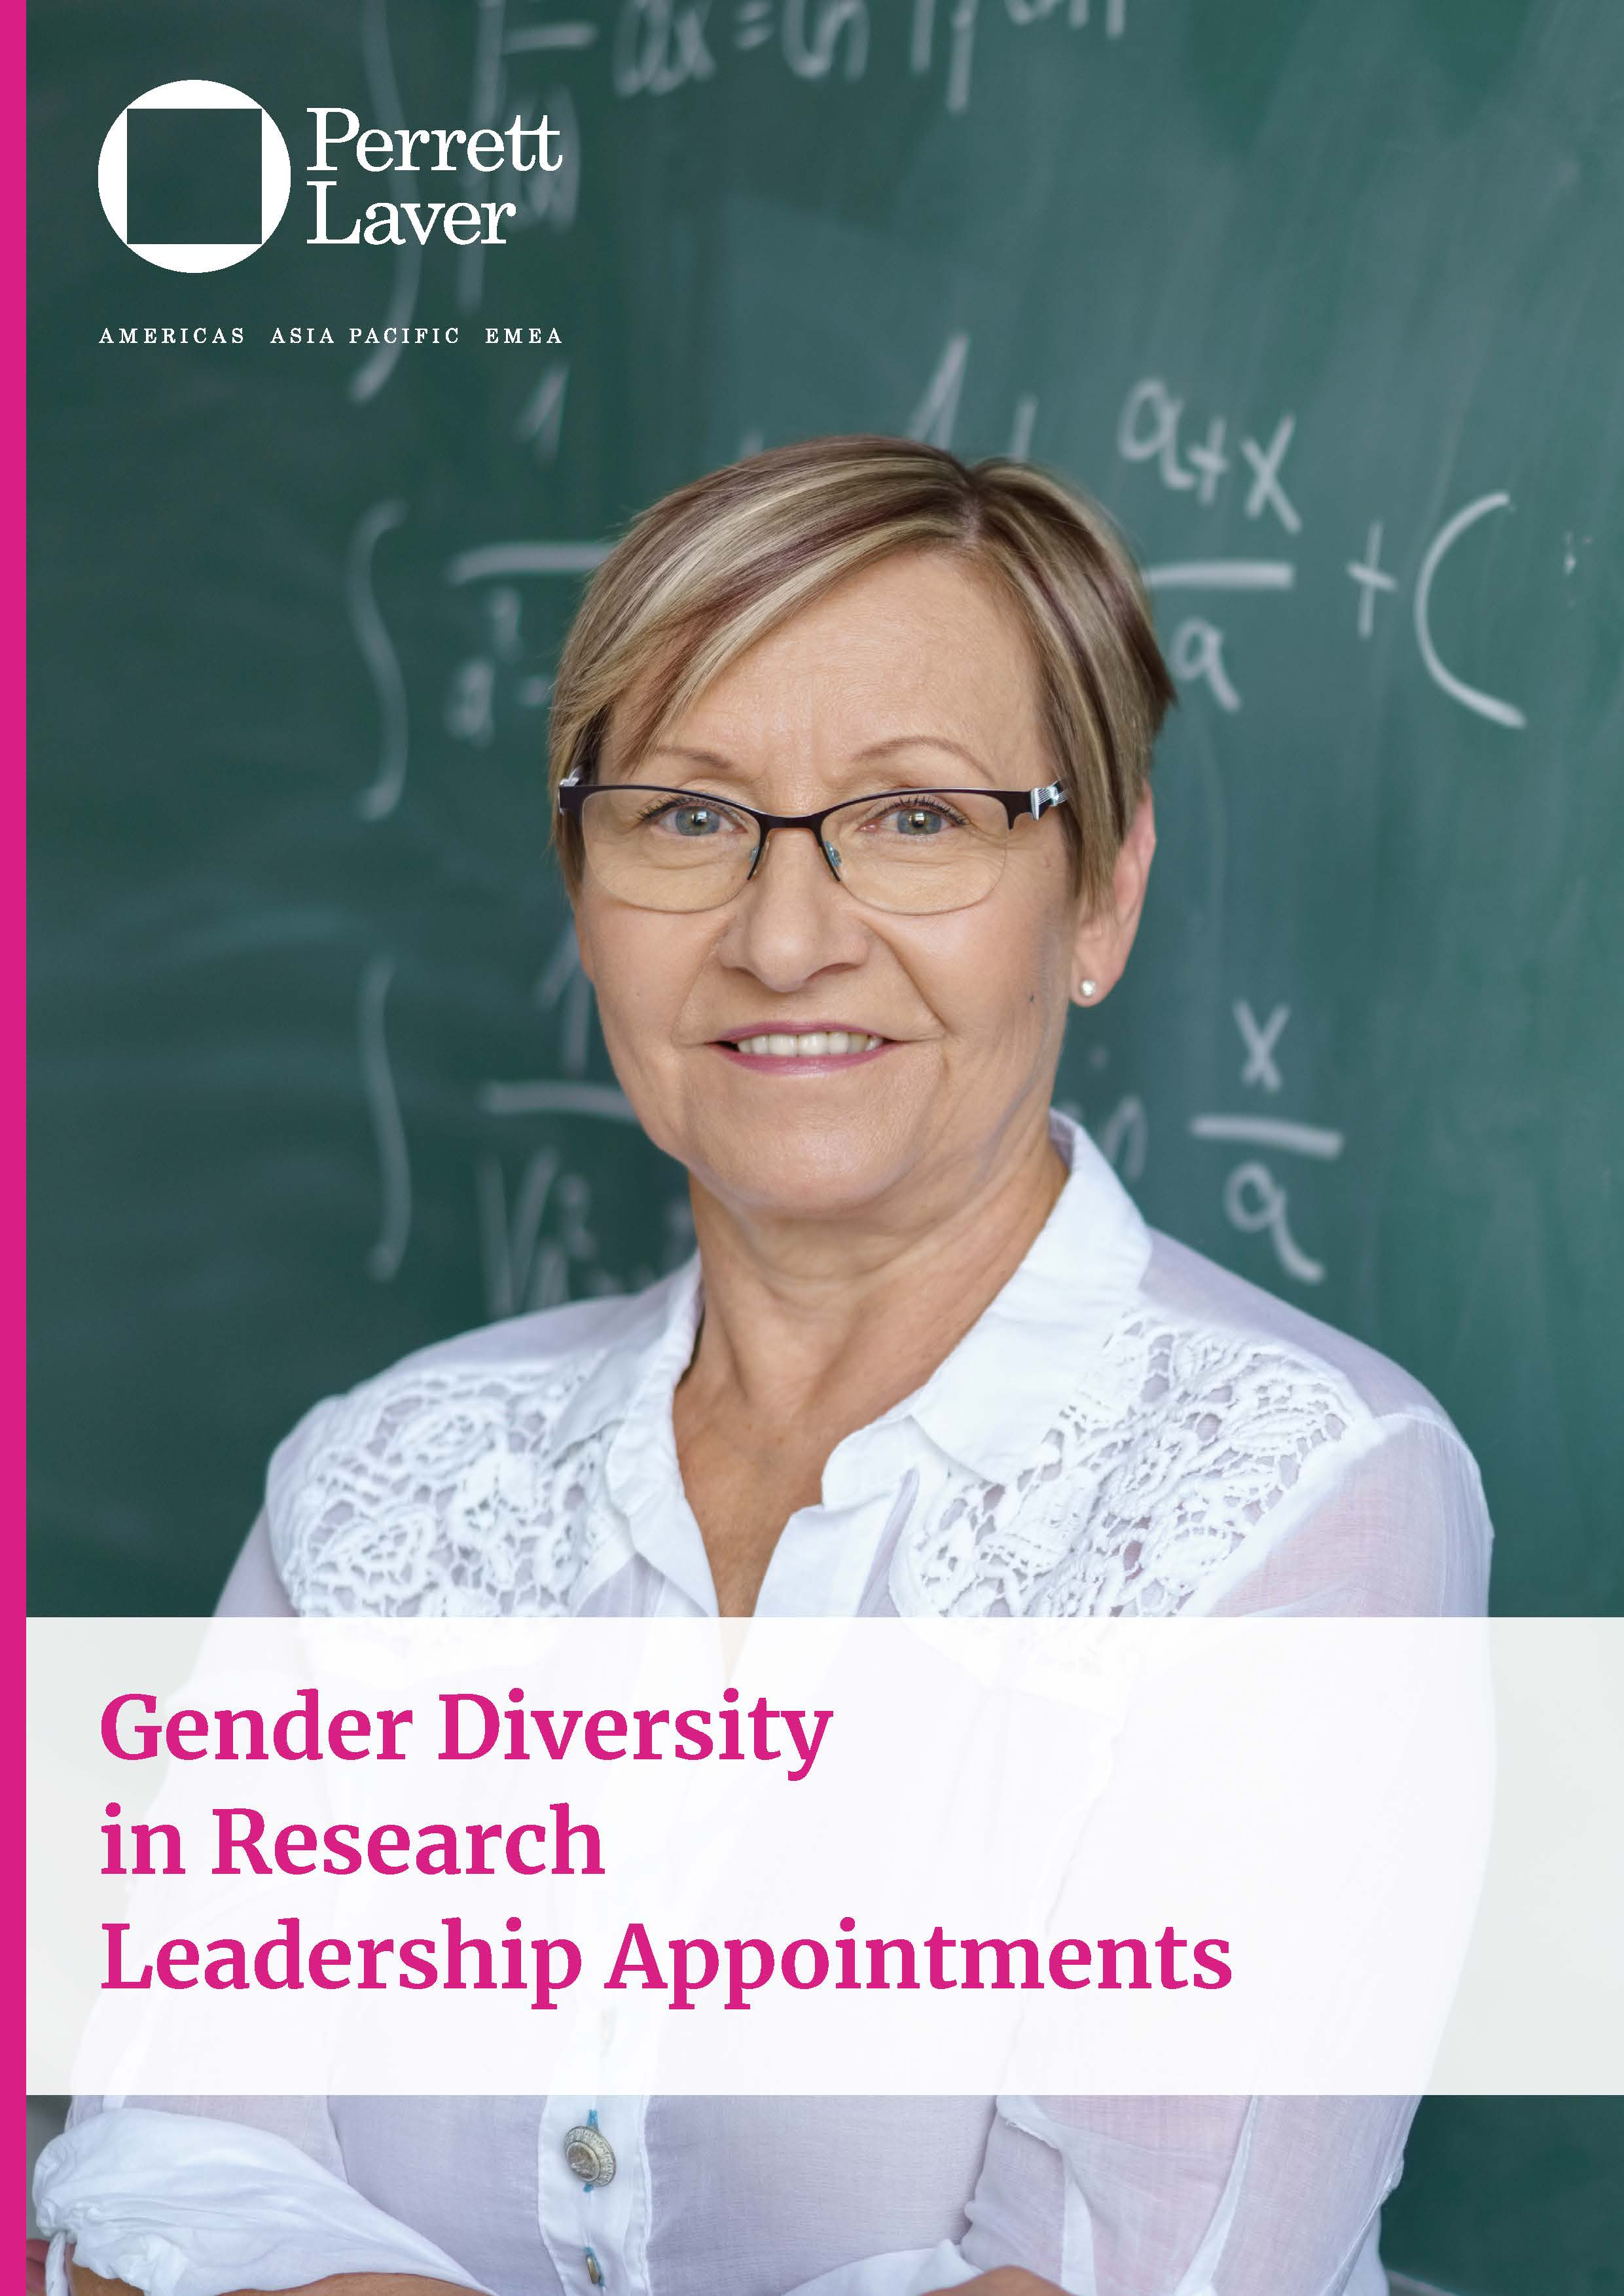 Gender Diversity in Research Leadership Appointments